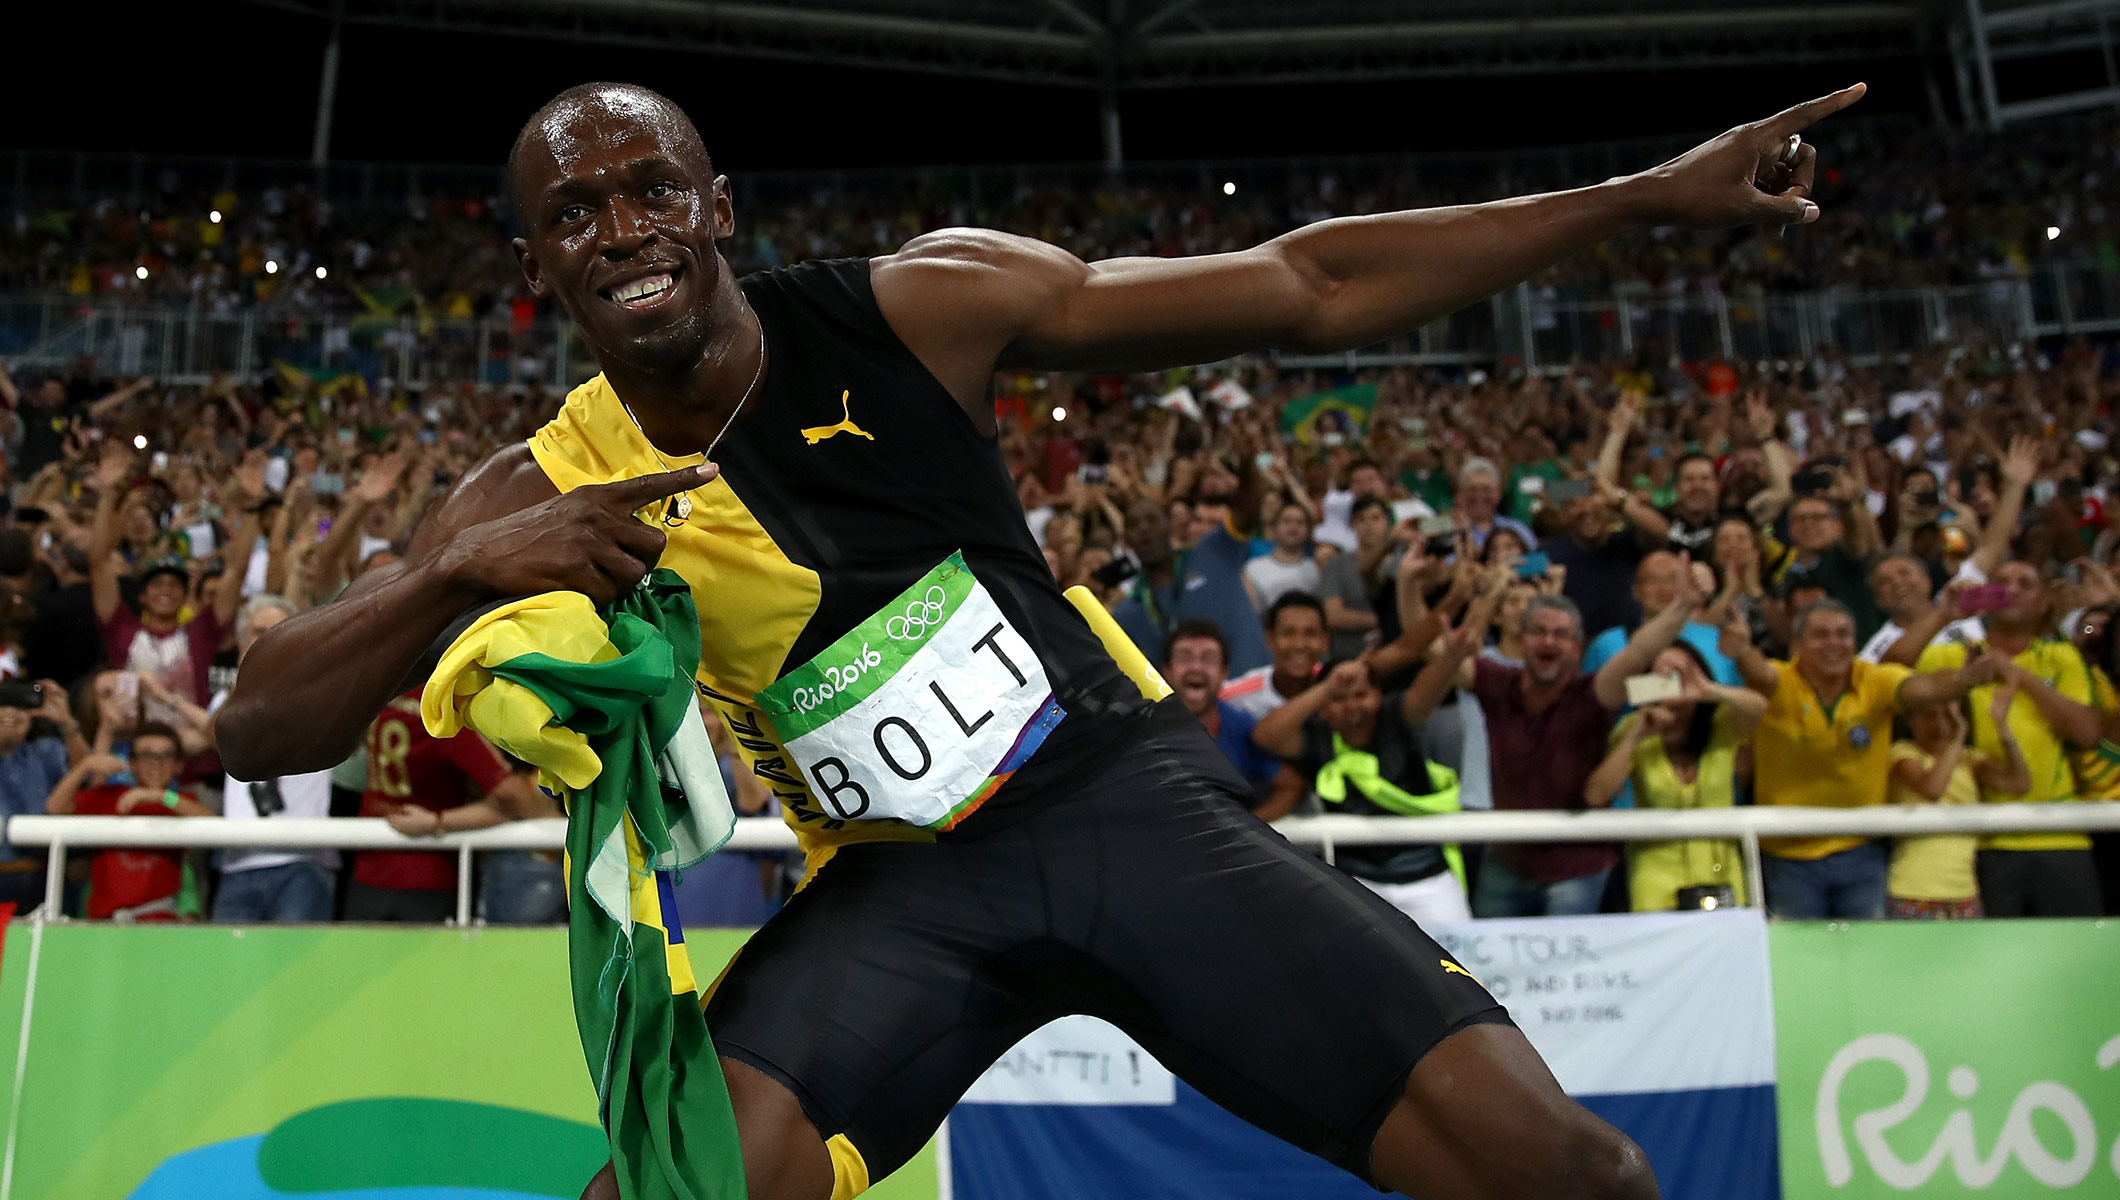 Unbeatable Bolt signs off with third Rio Gold